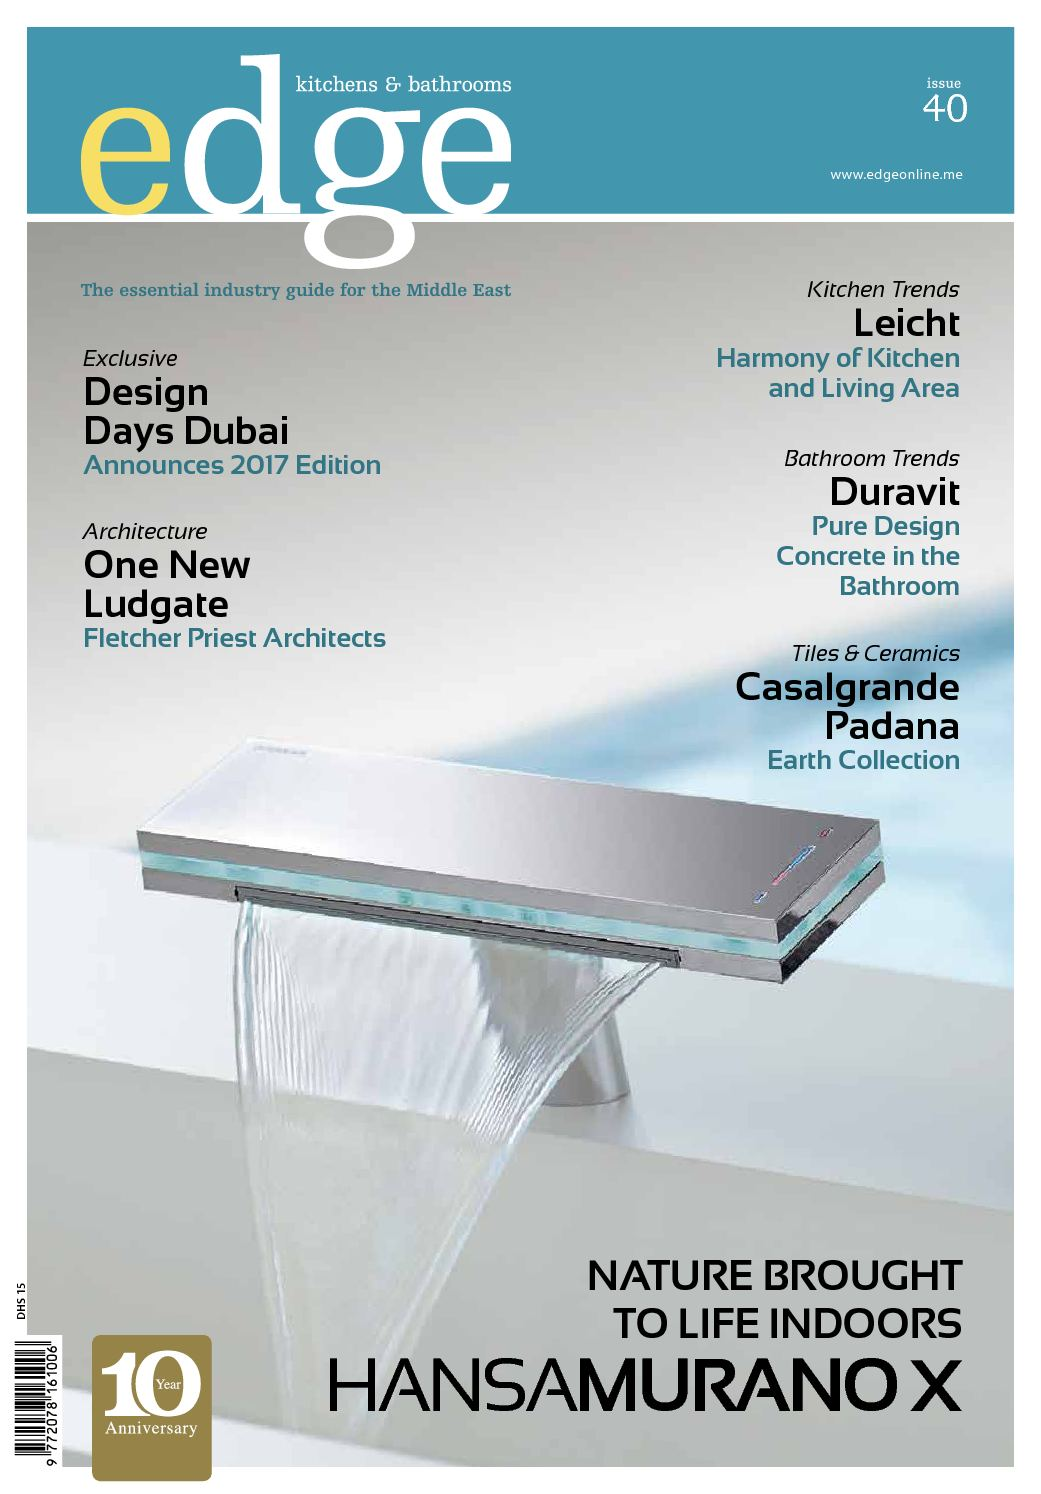 Bagno Design Bahrain Wll Calaméo Edge Gcc 40 Feb 2017